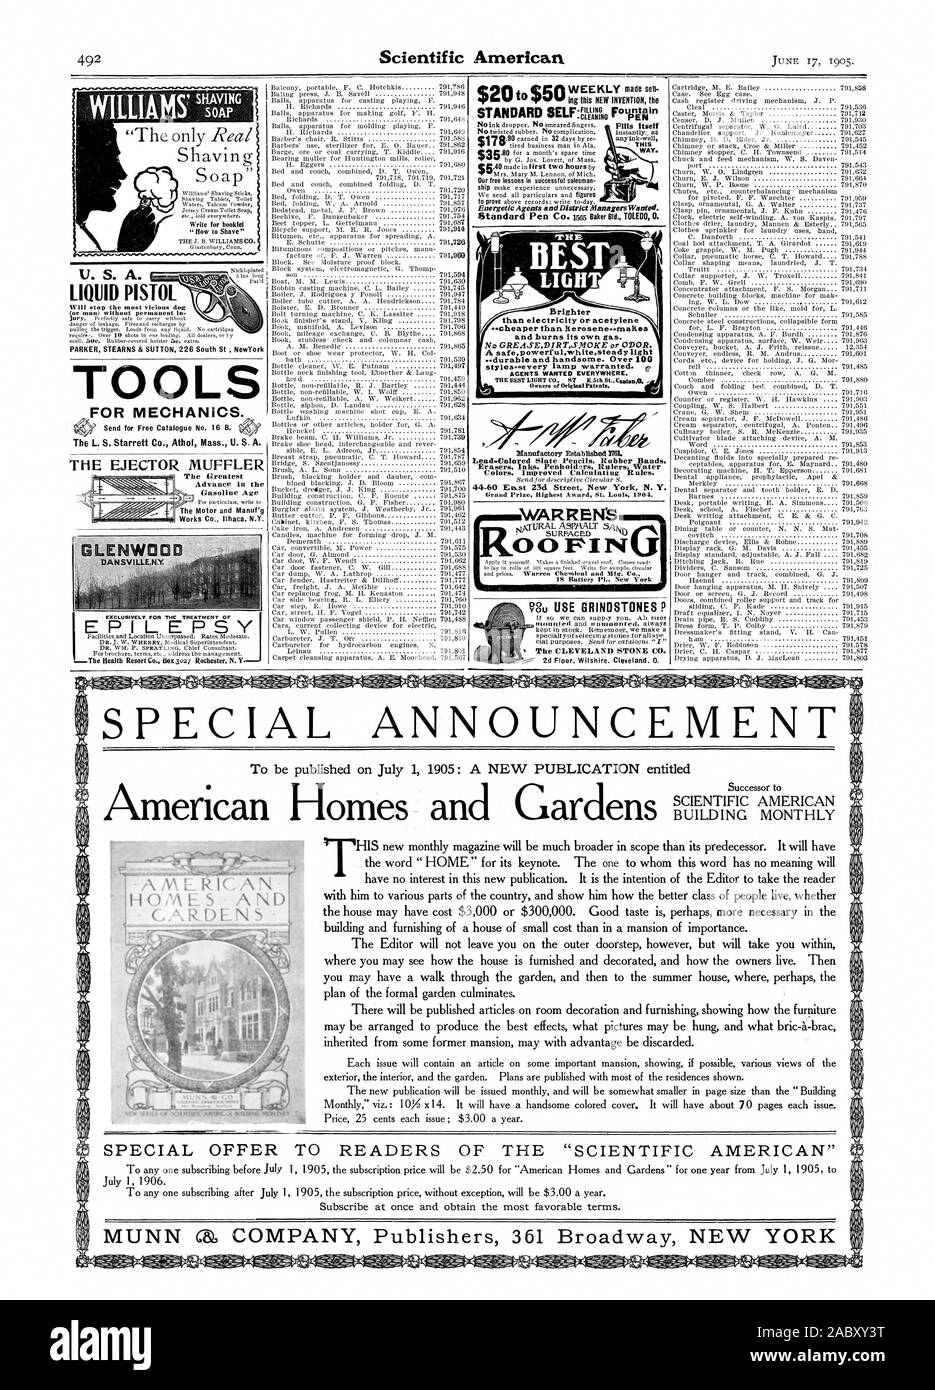 TOOLS FOR MECHANICS. mcsommiNUENCD. m) WARREN'S.m.% 0 0 F I NI Shaving w Brighter No GREASEDIRTSNOKE or ODOR. Energetic Agents and District Managers Wanted. U. S. A. LIQUID PISTOL SPECIAL ANNOUNCEMENT AMERICA IHOMES  AND GARDENS  h SPECIAL OFFER TO READERS OF THE 'SCIENTIFIC AMERICAN, 1905-06-17 Stock Photo